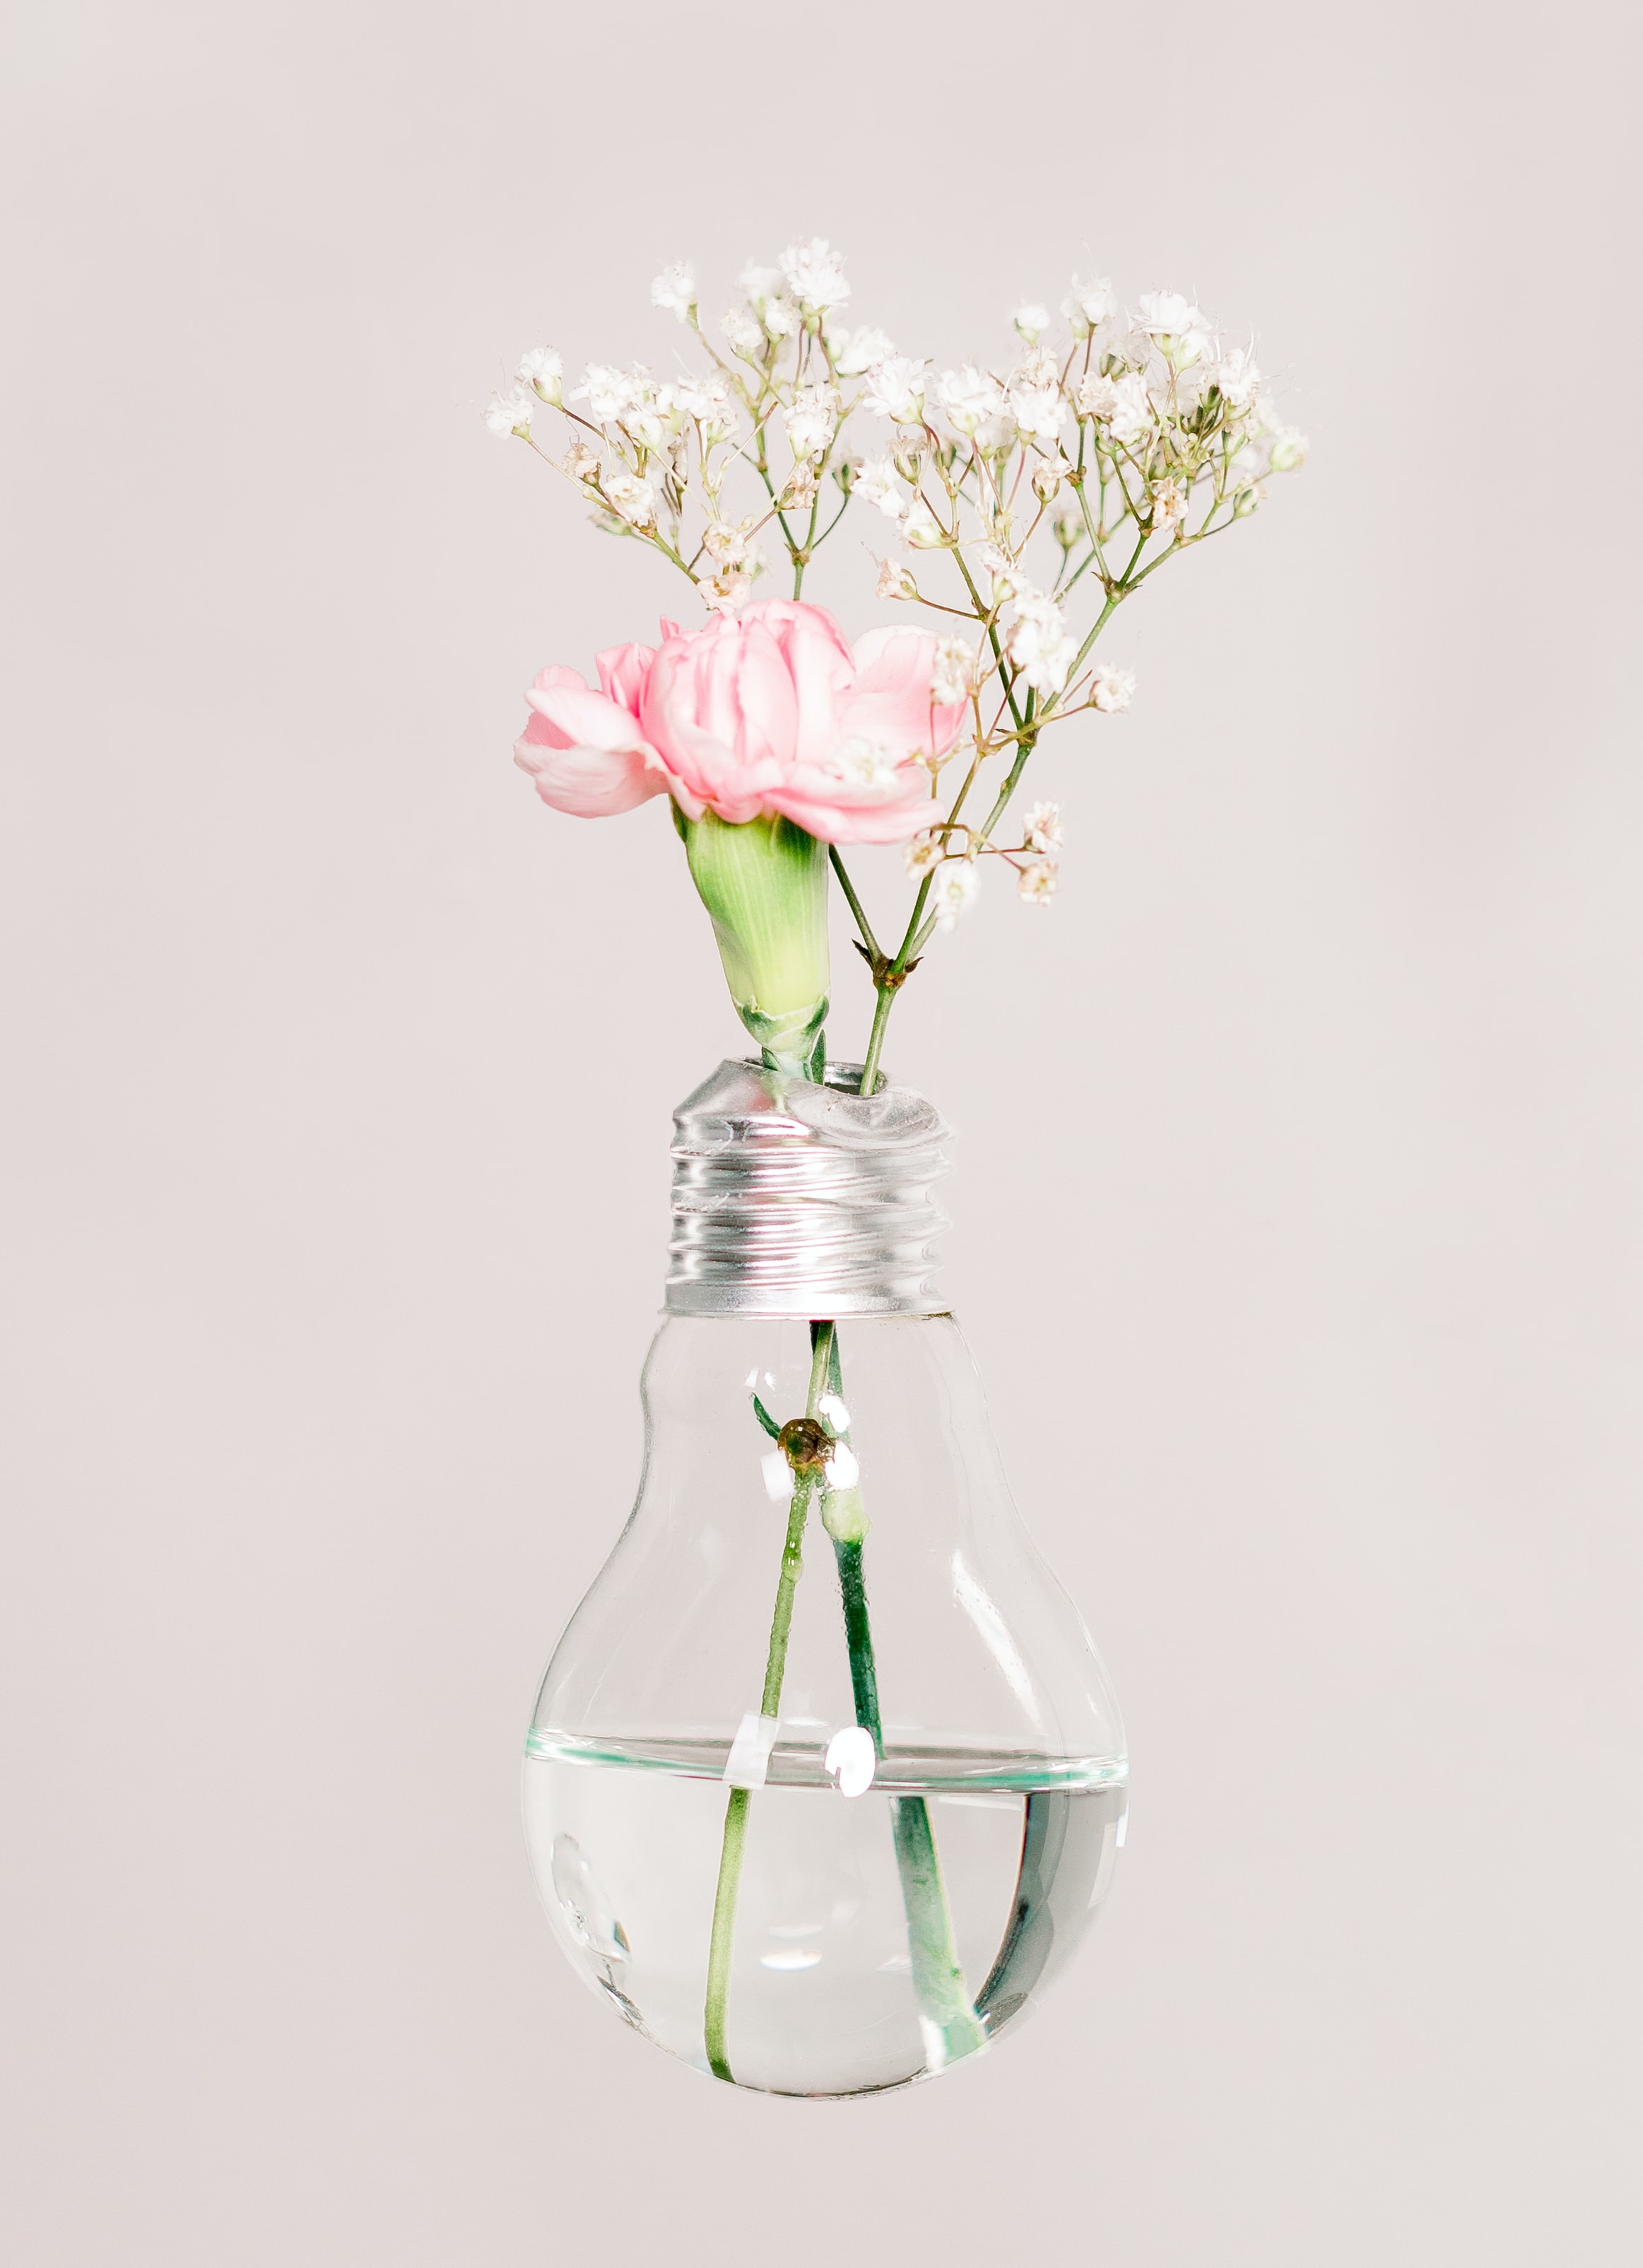 white and pink petaled flowers in clear glass LED bulb vase